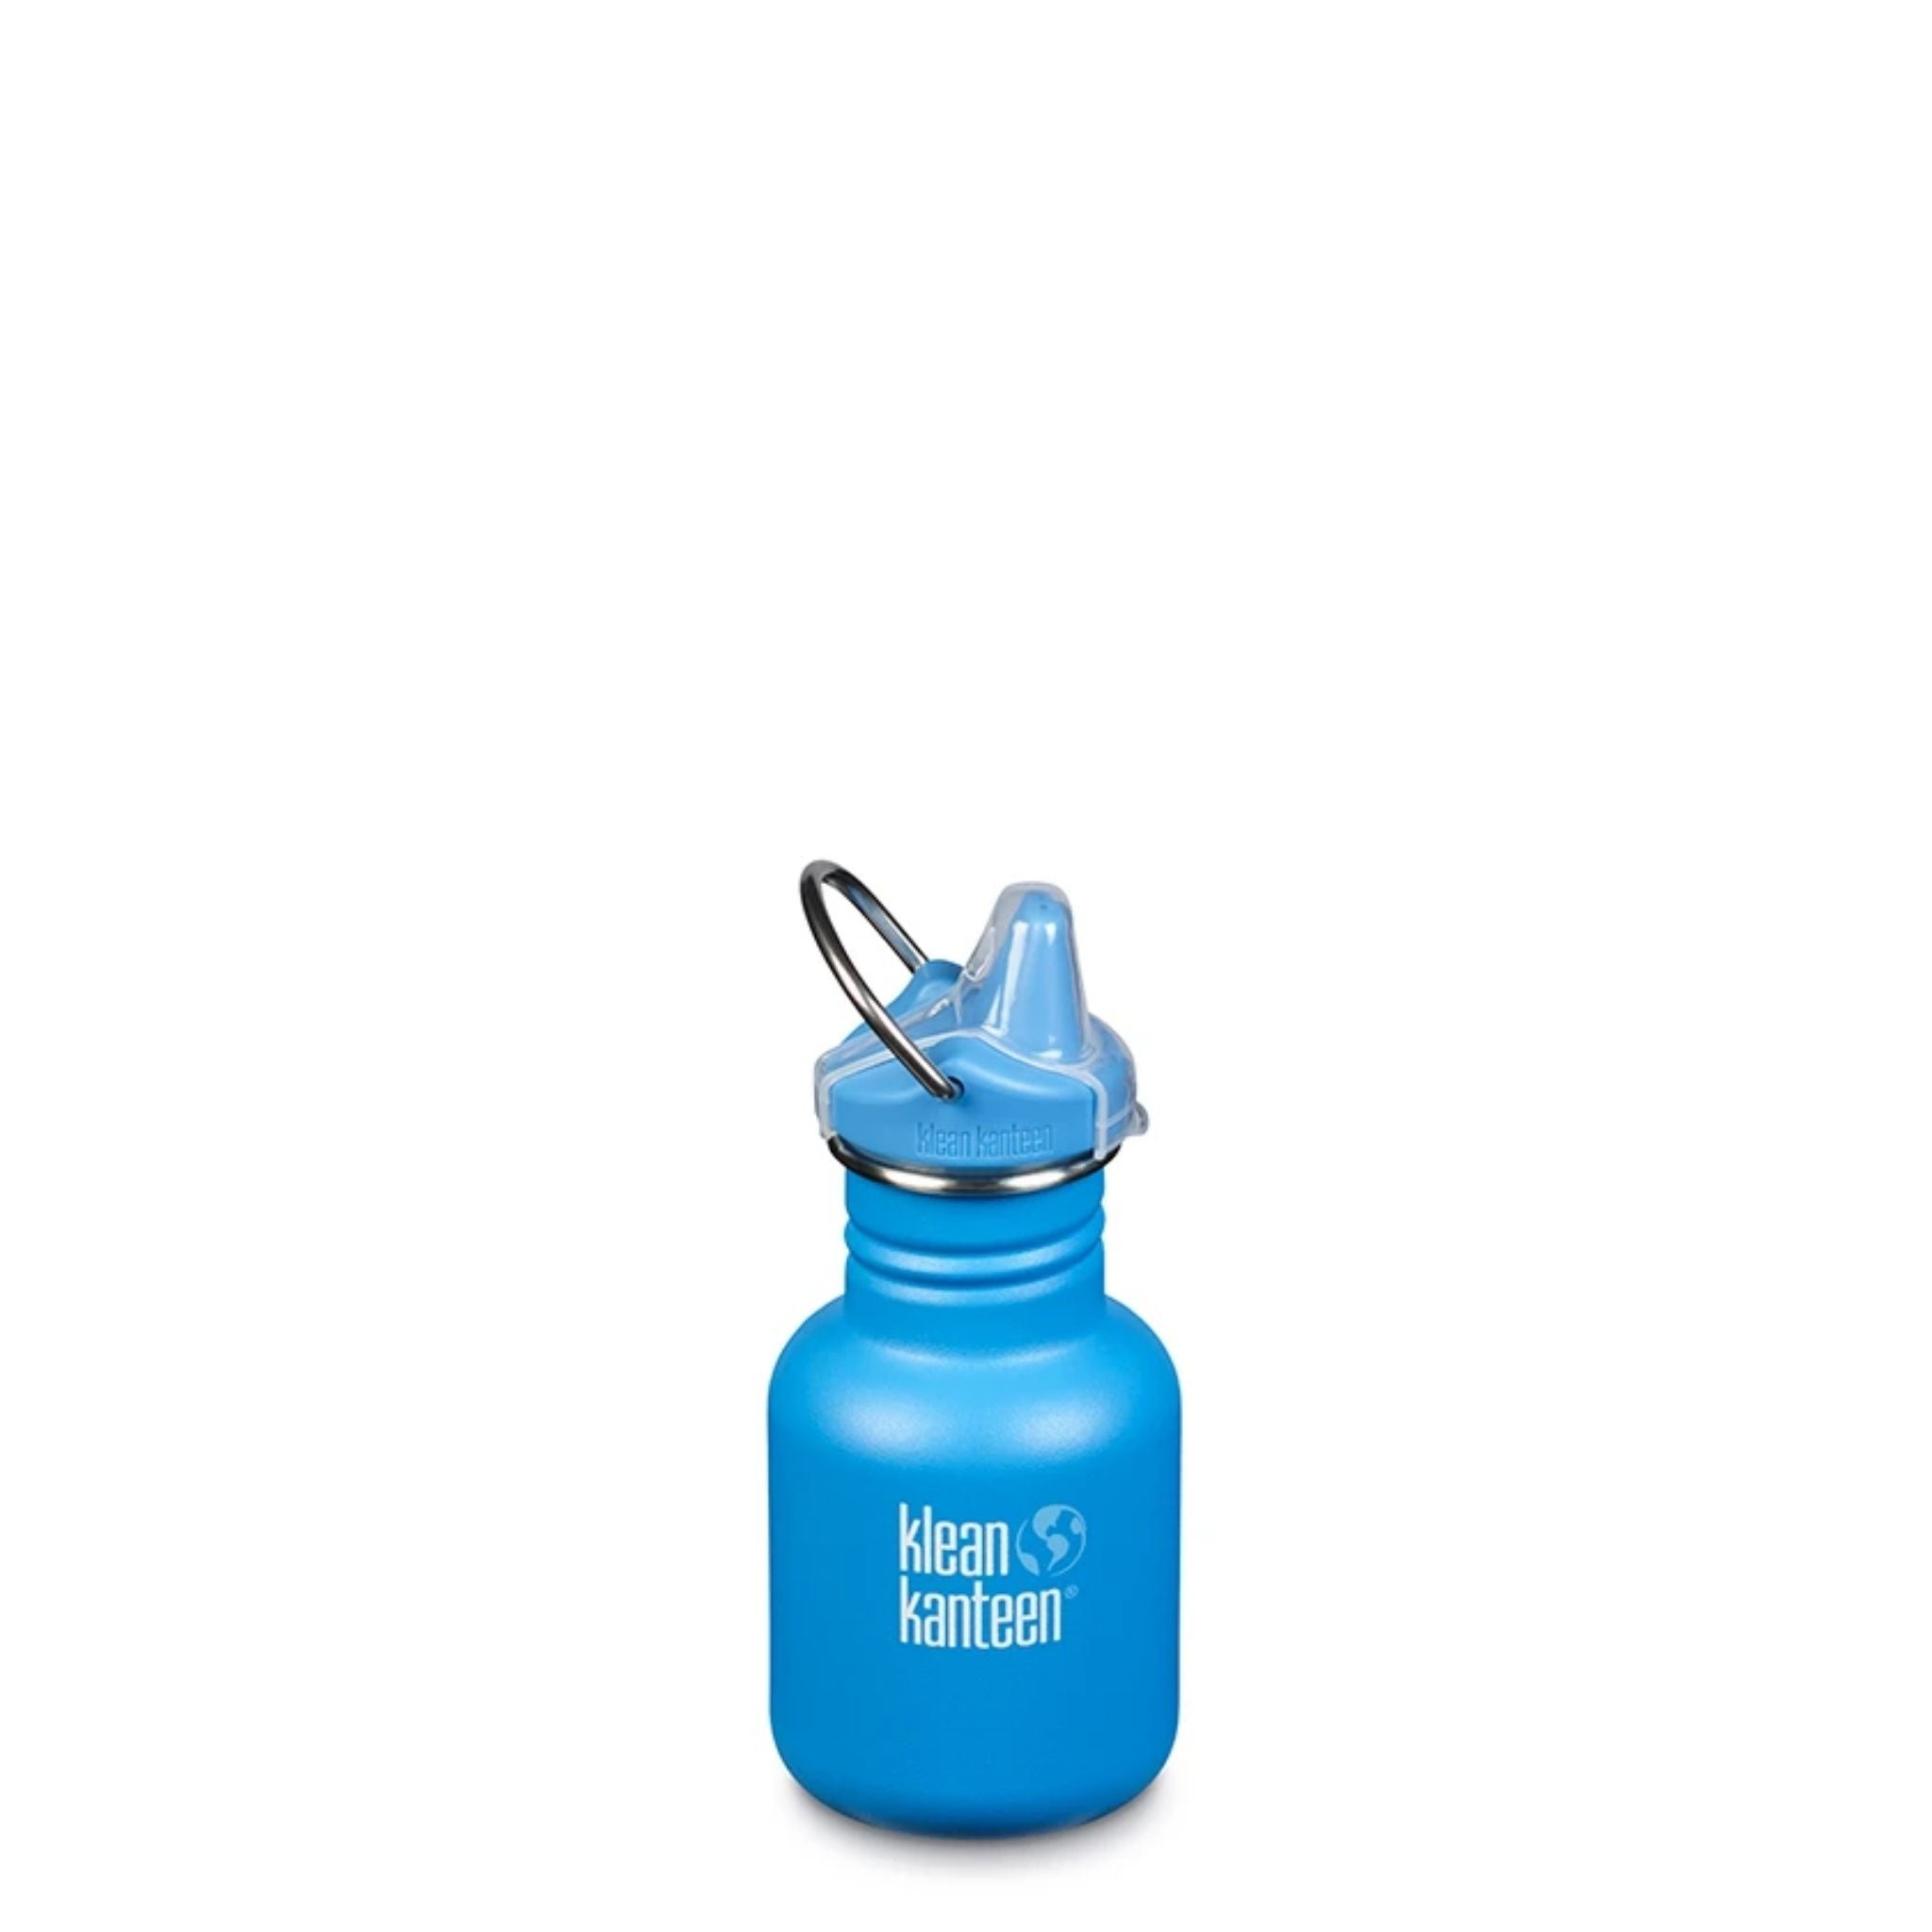 klean kanteen 12 oz sippy bottle pool party medium blue with words klean kanteen and globe logo engraved on side in white and blue, blue sippy lip with clear cover and metal loop handle